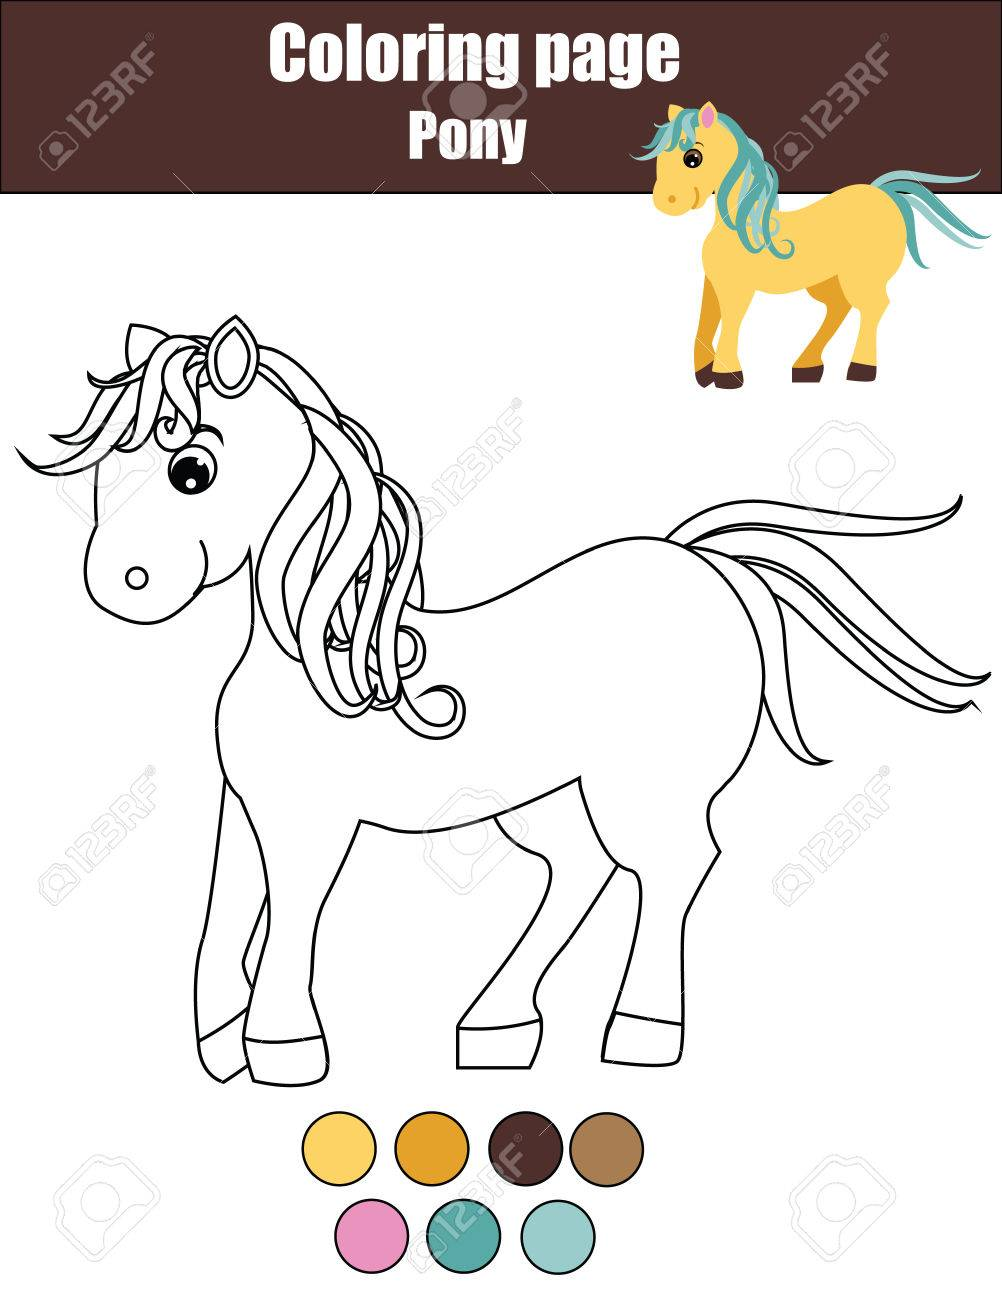 Coloring Page With Cute Pony. Color The Little Horse Drawing ...